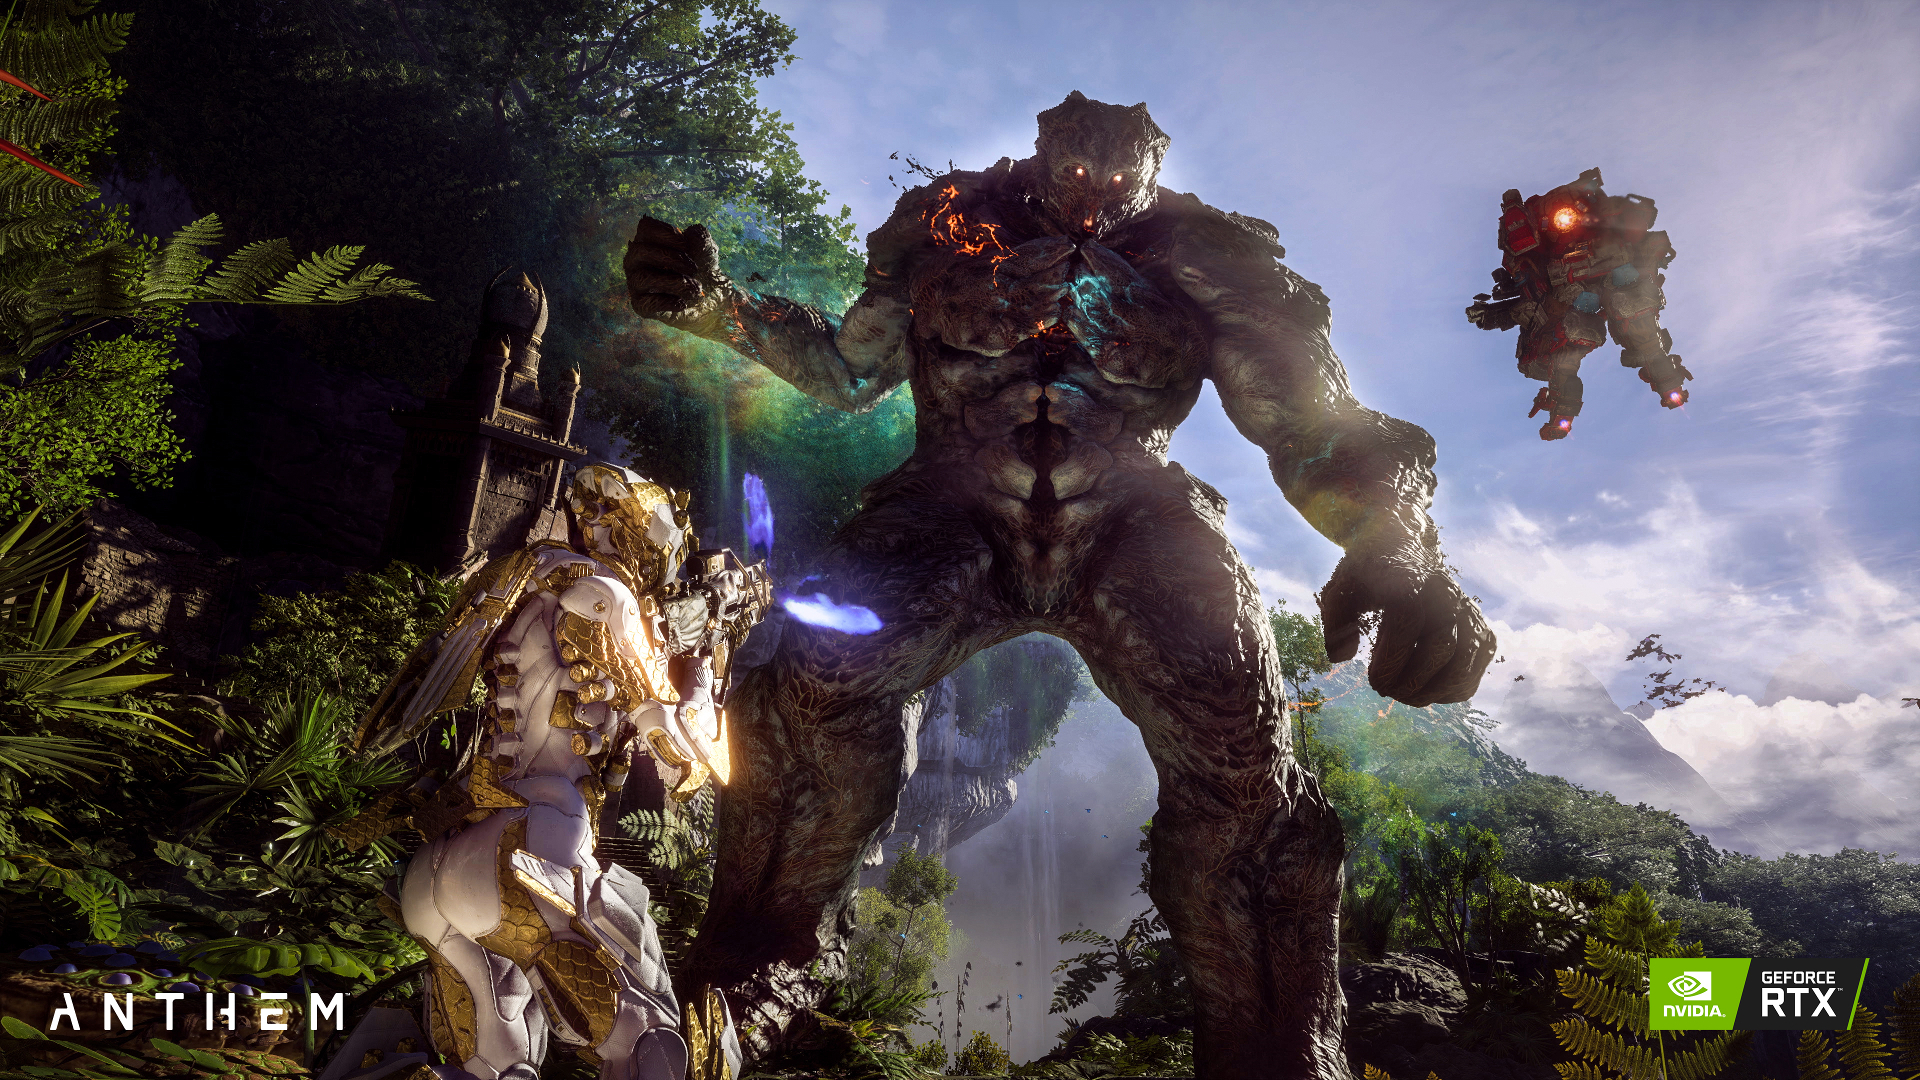 Anthem's new patch delivers up to a 40% performance boost for RTX